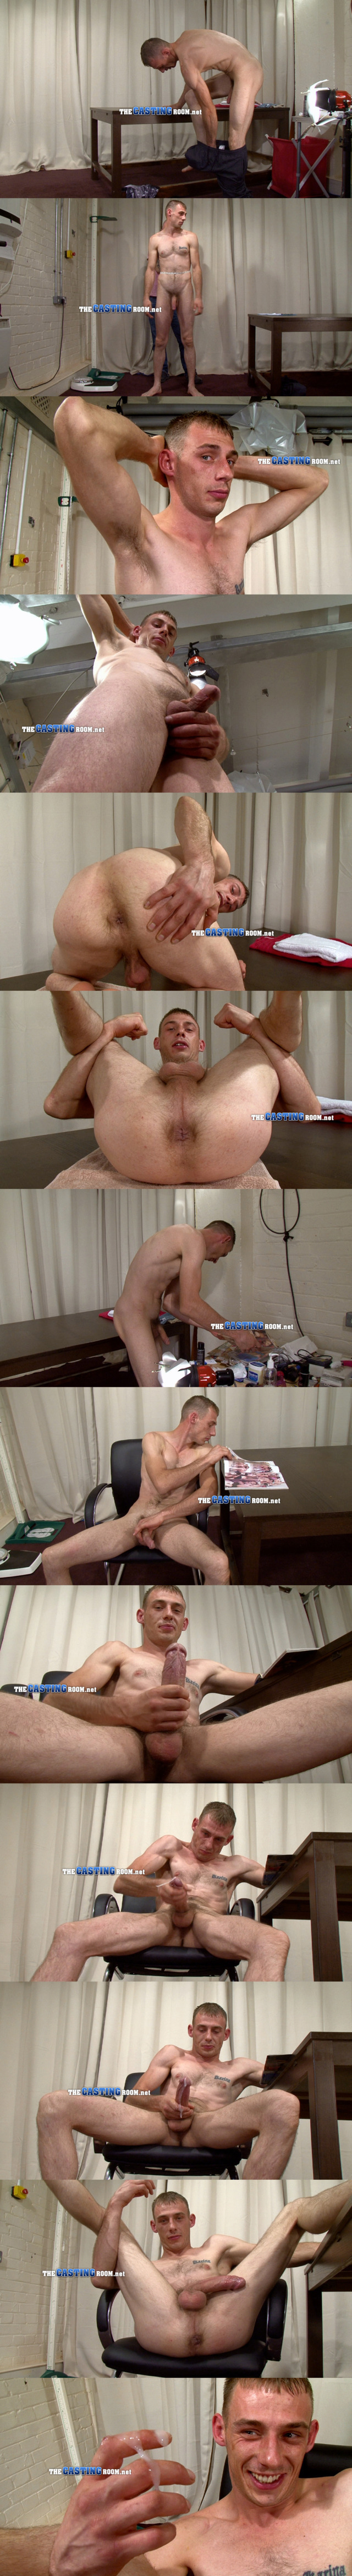 straight-guy-first-naked-audition-the-casting-room